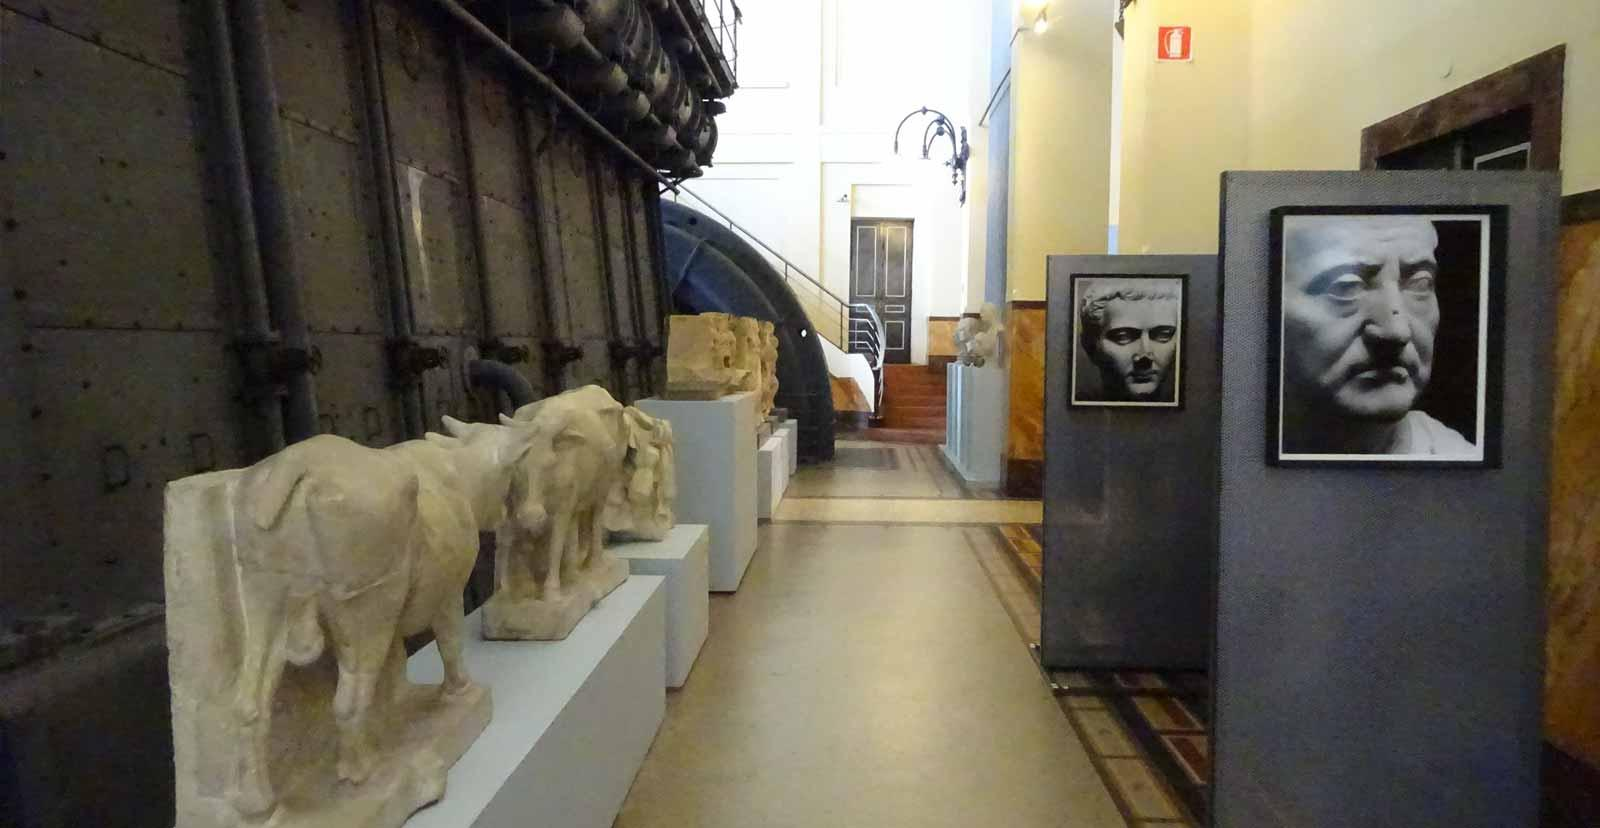 Exhibition in Museo Centrale Montemartini.